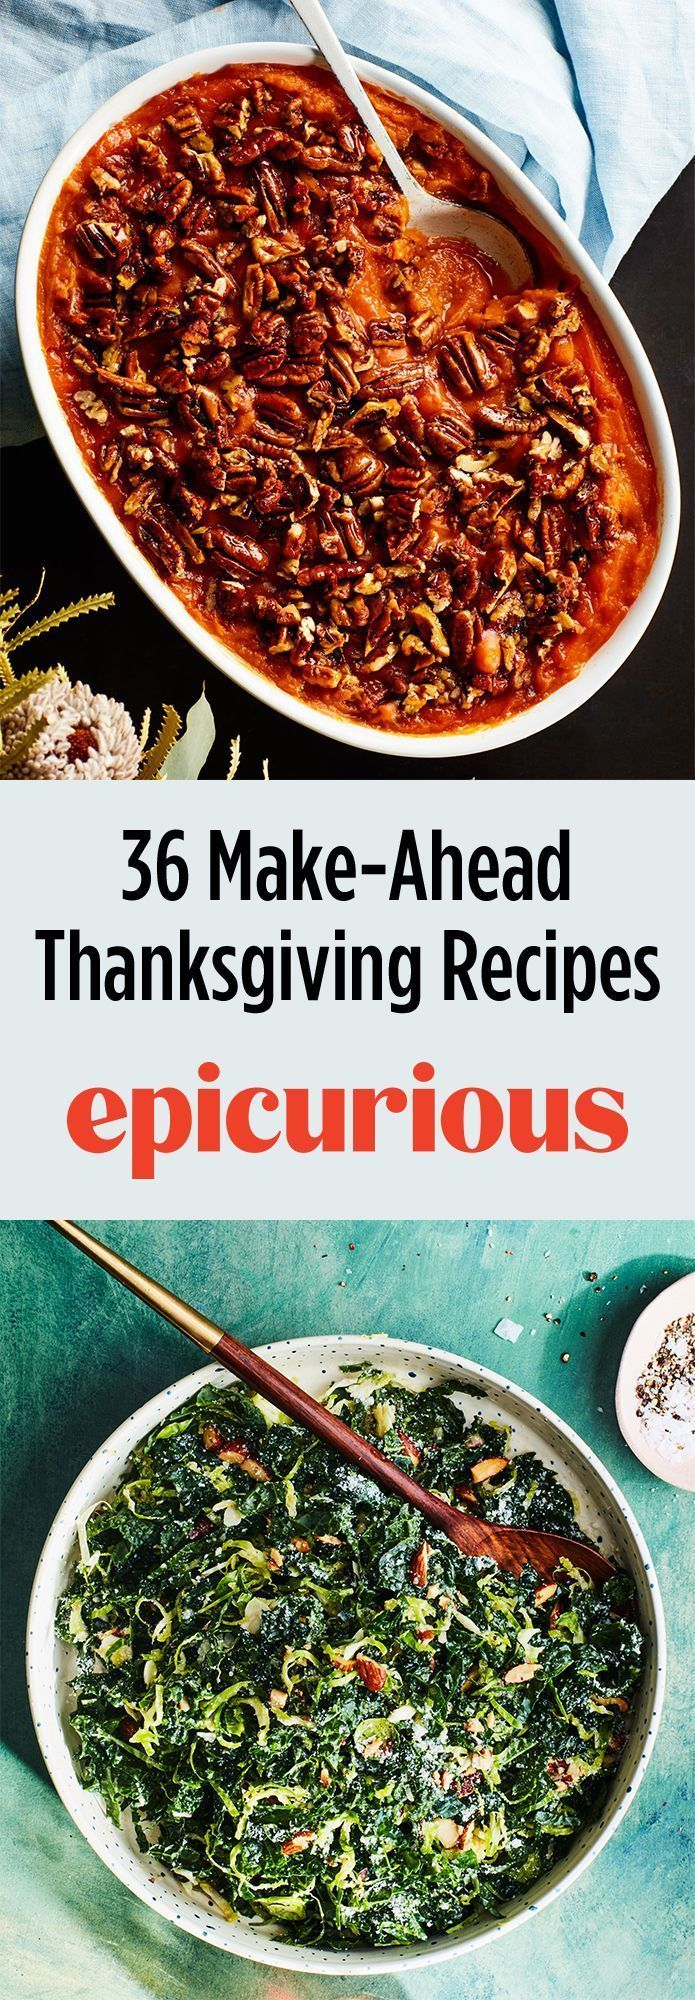 36 Make-Ahead Thanksgiving Recipes for a Stress-Free Holiday | Epicurious